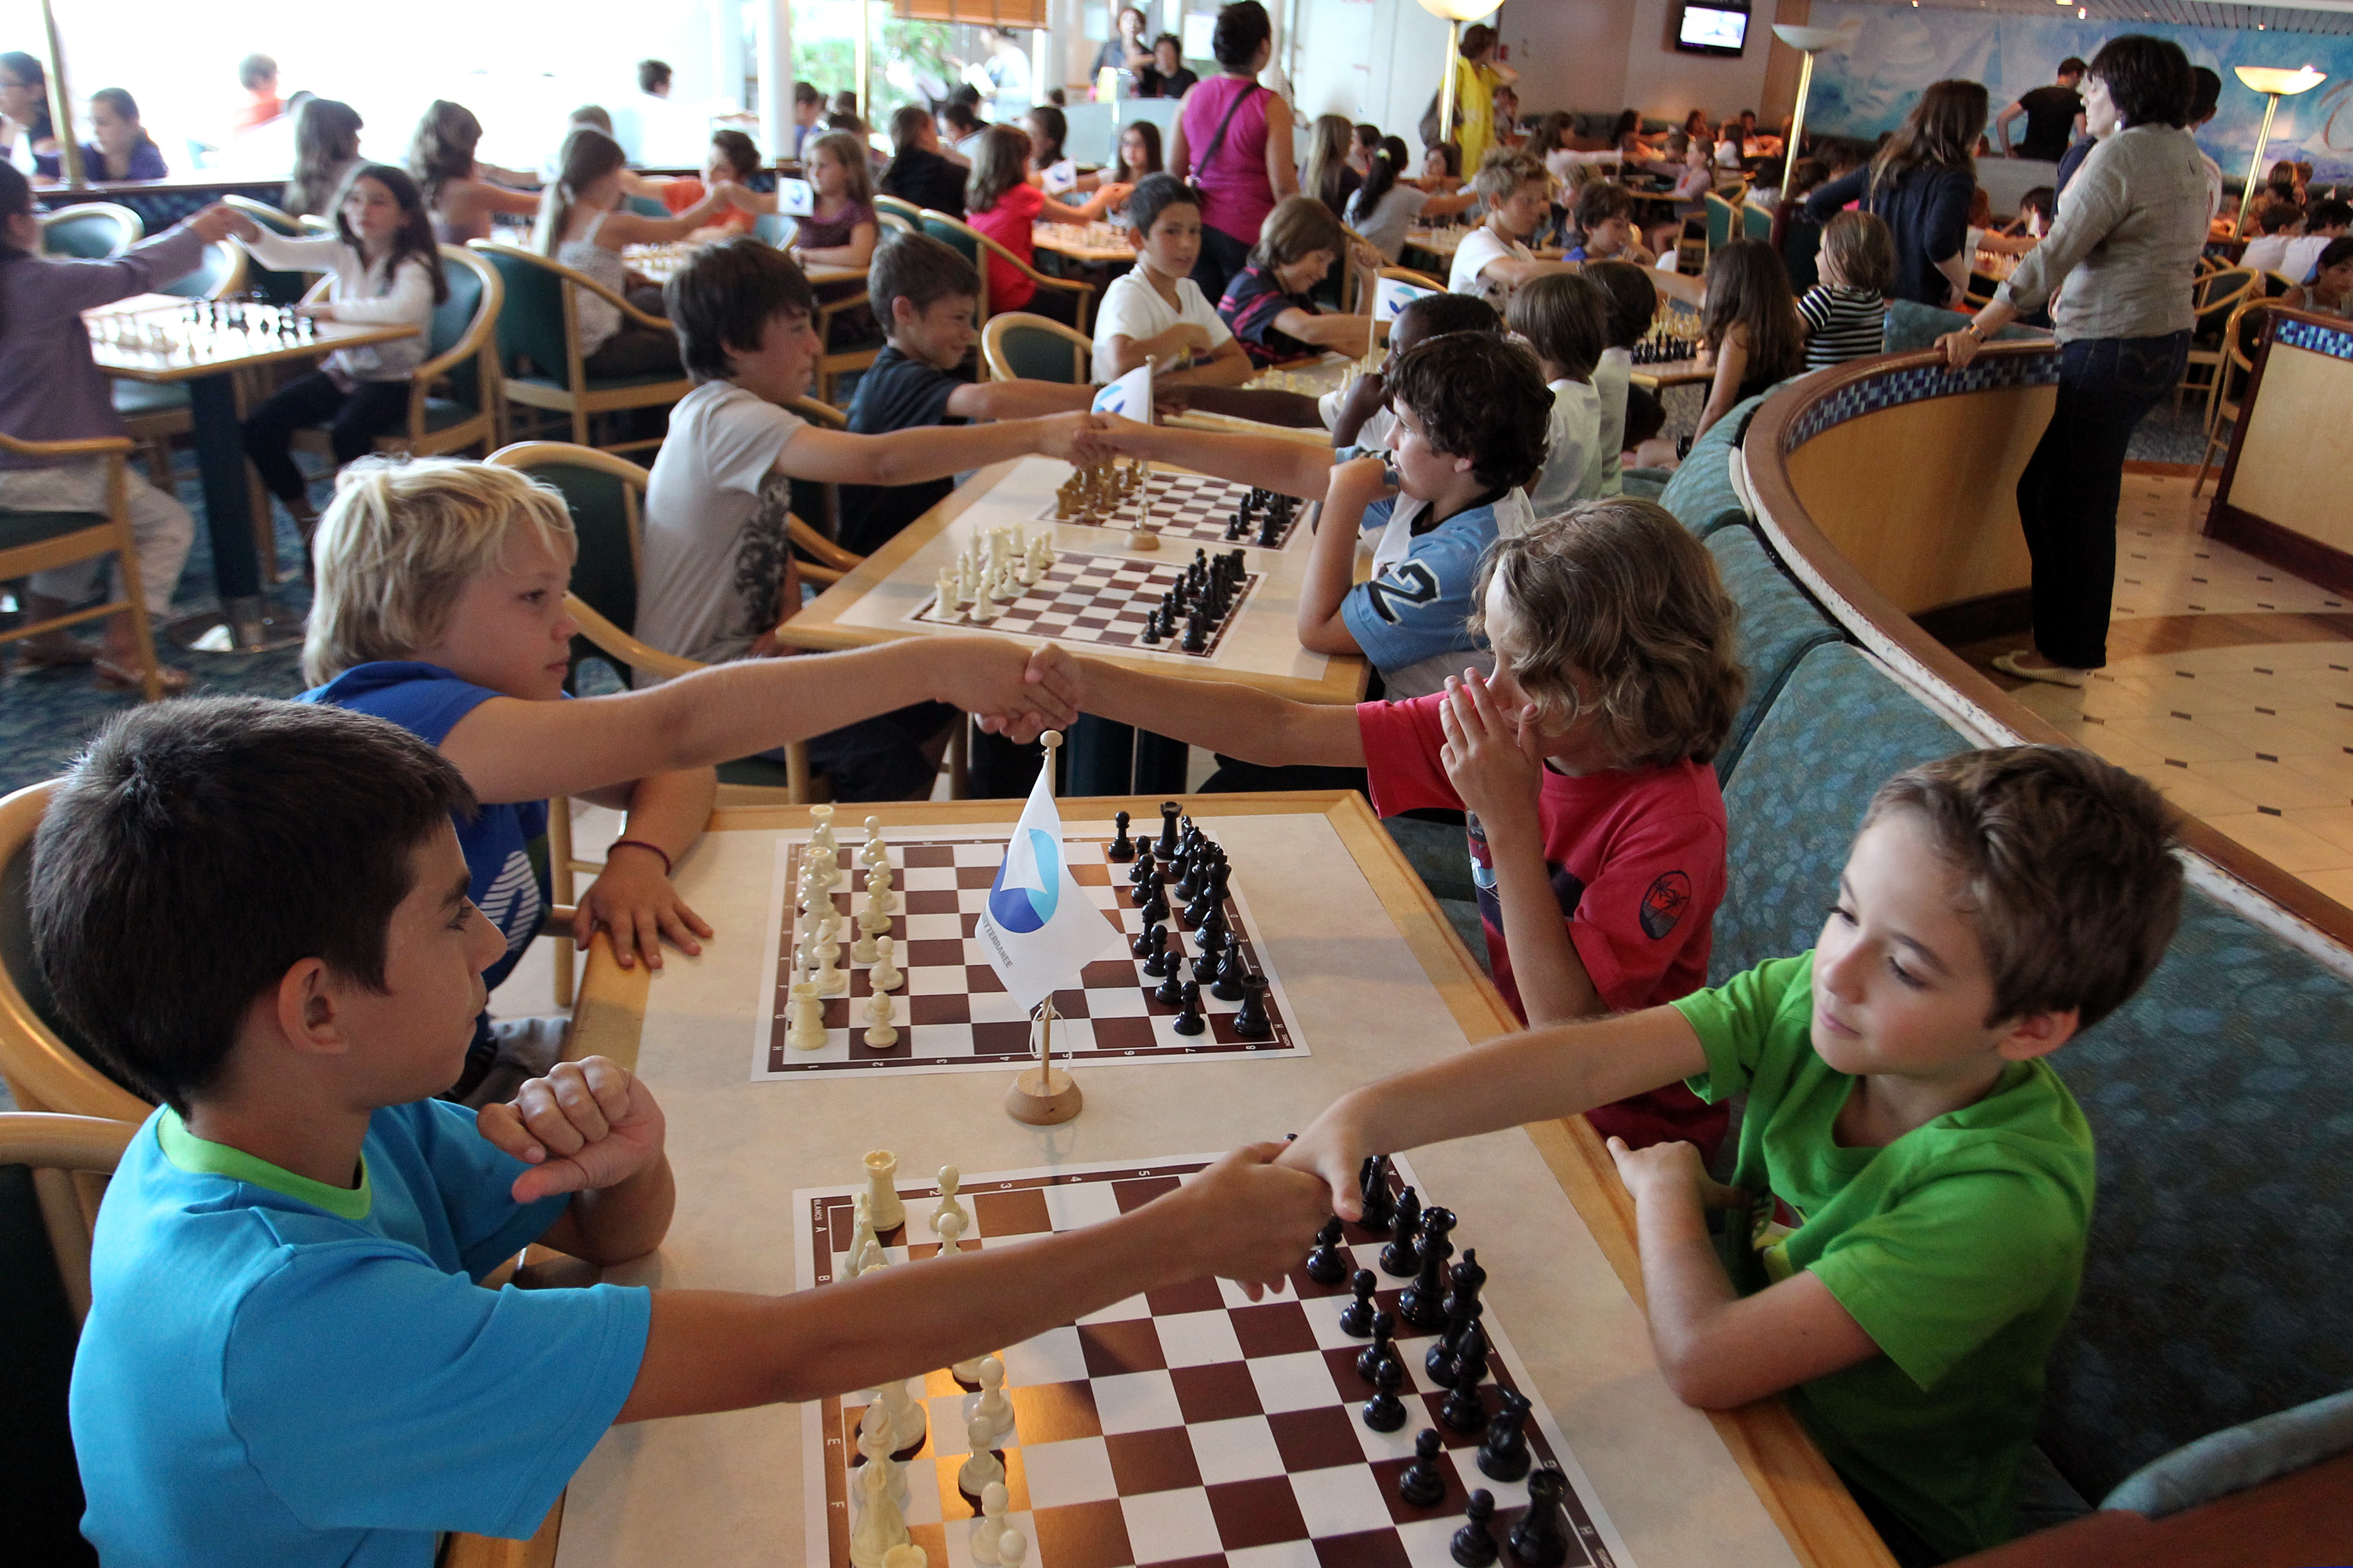 French kids playing chess